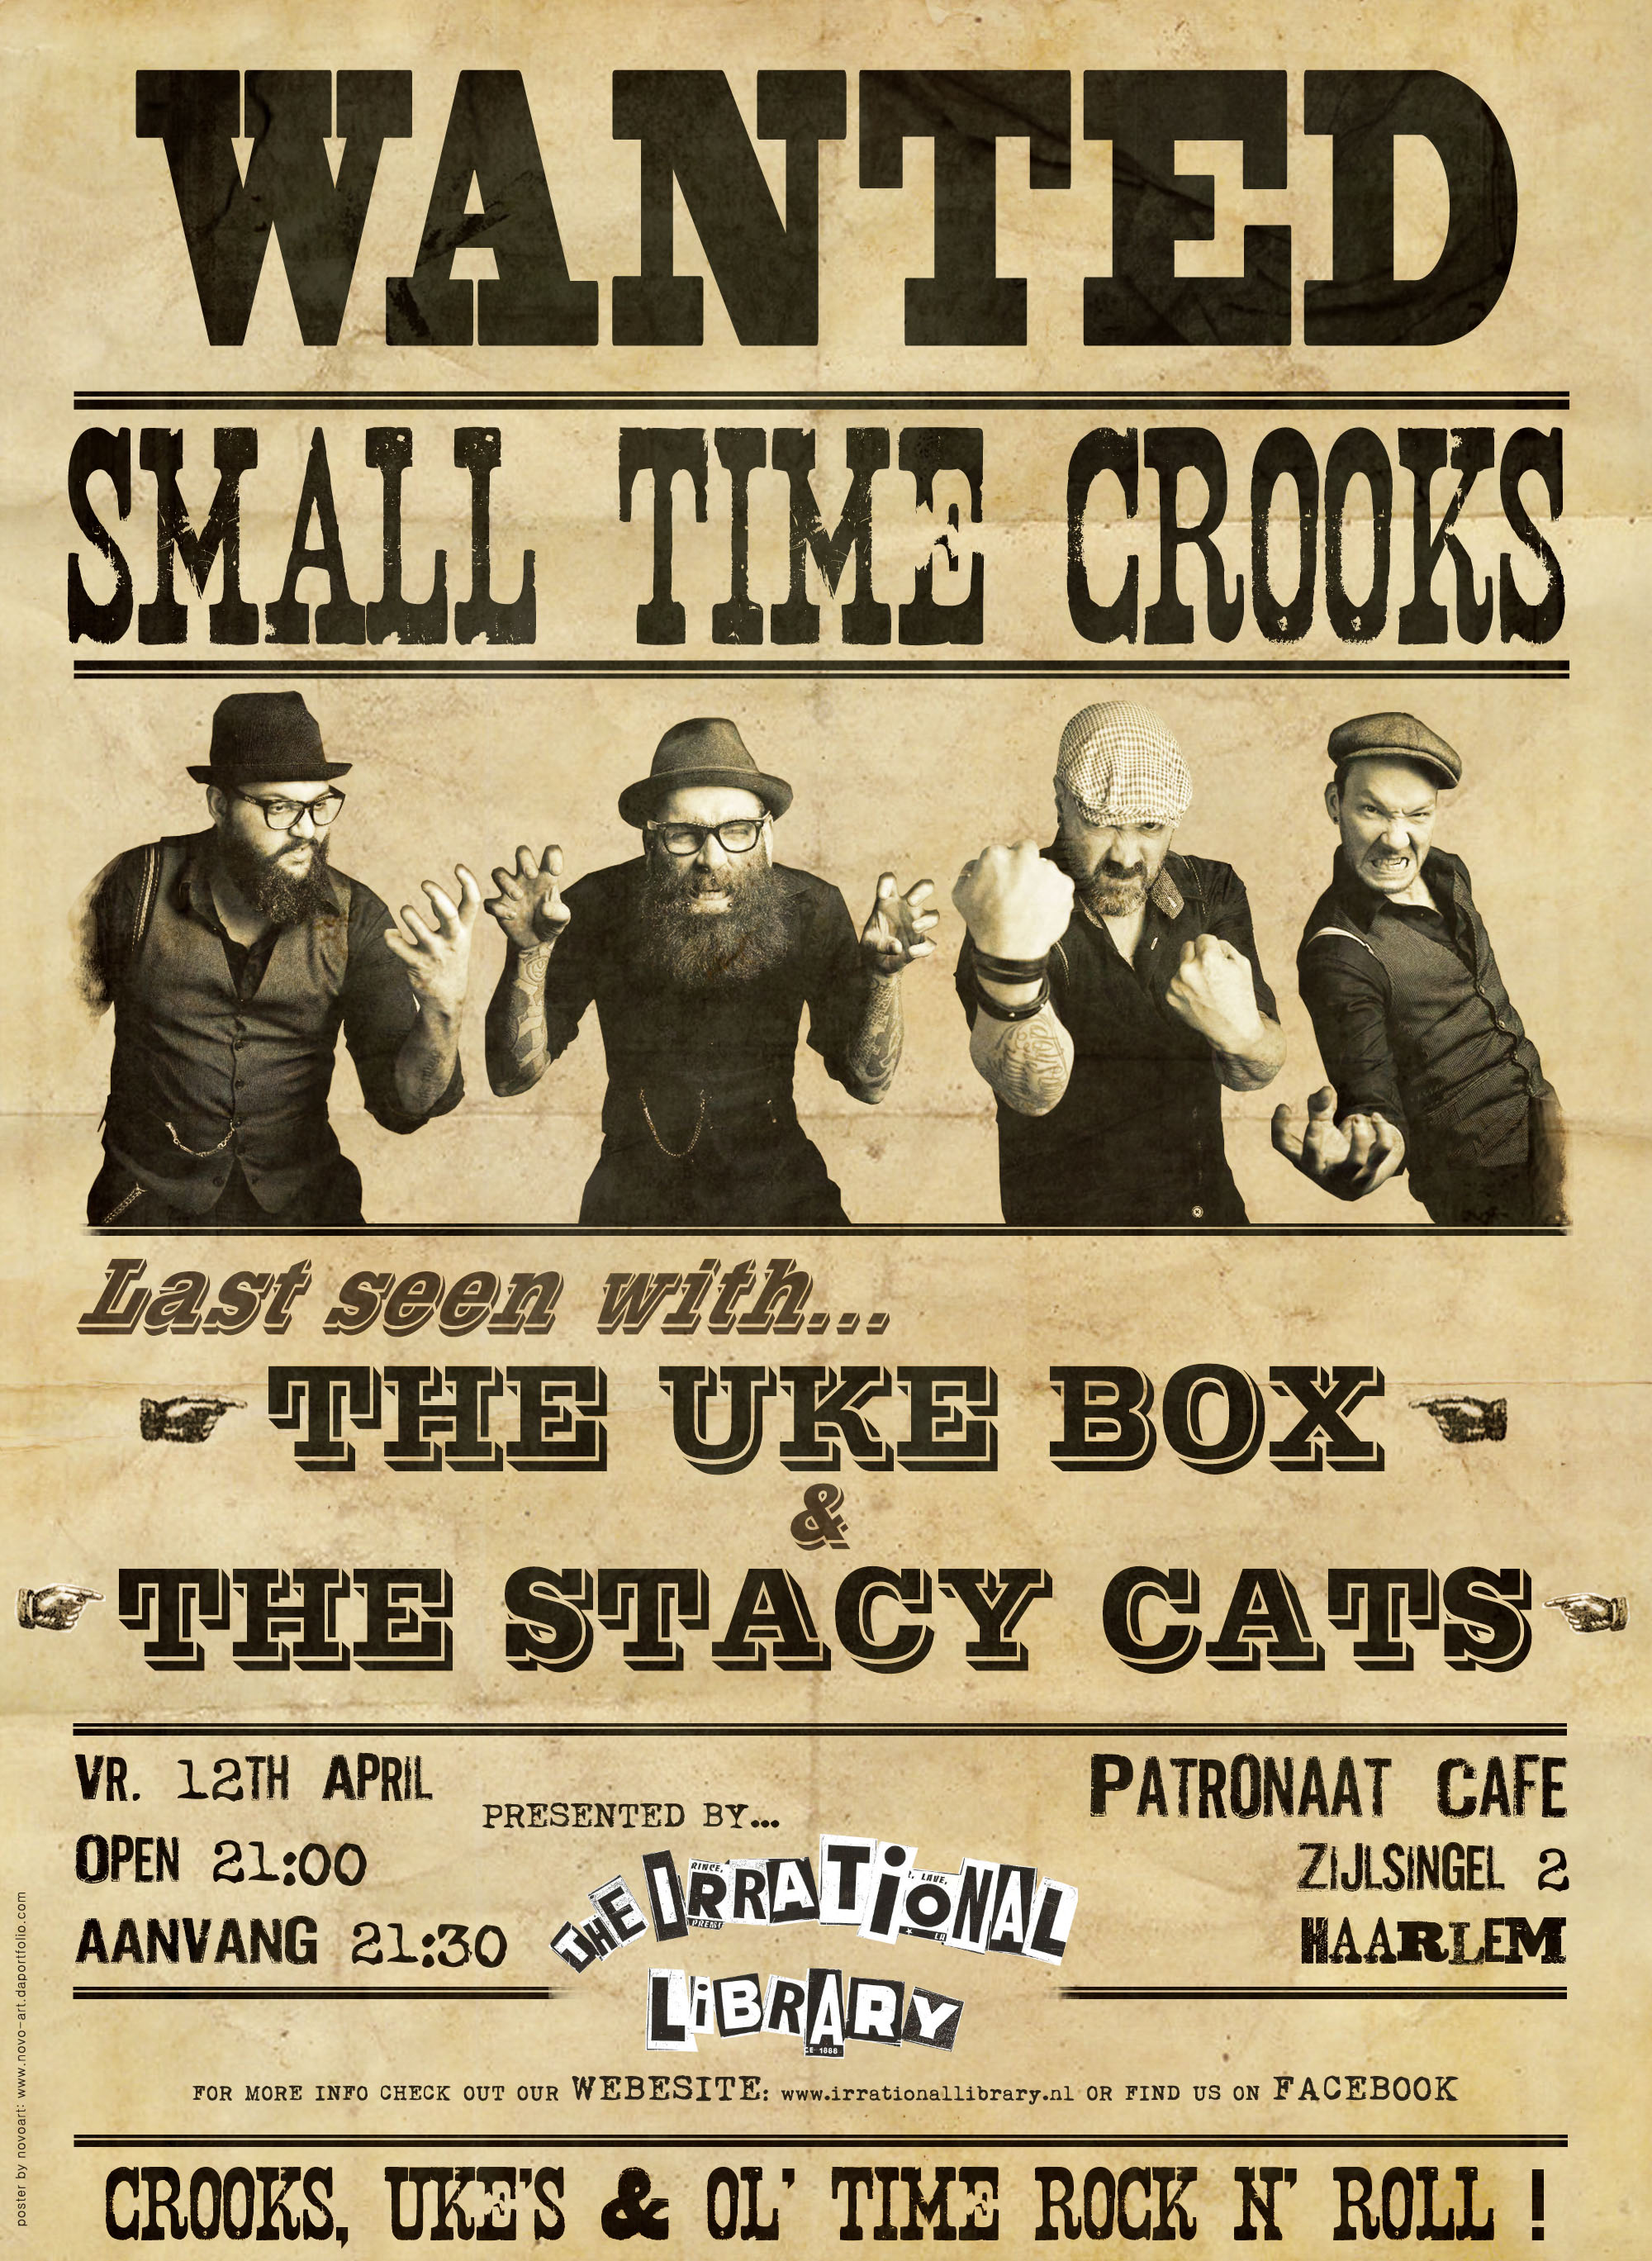 Small Time Crooks 1.jpg